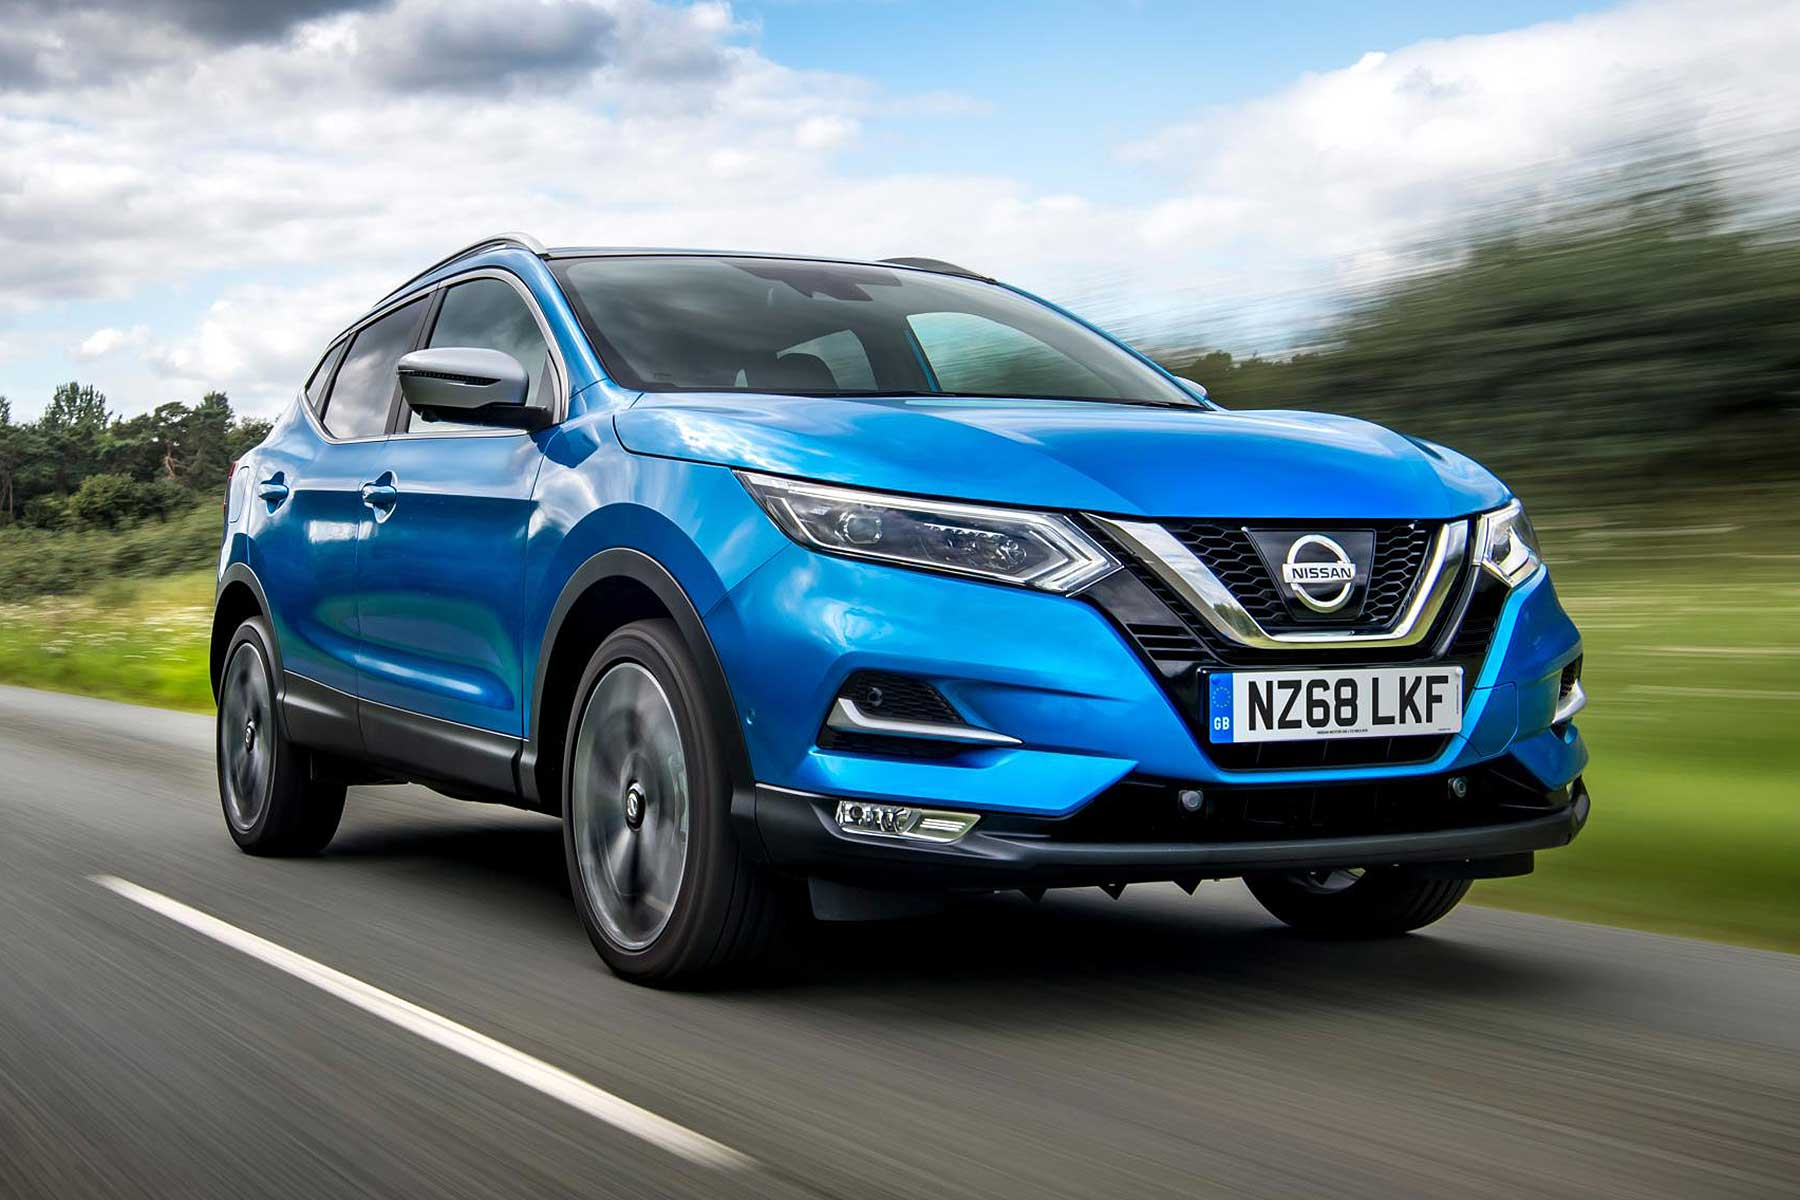 2018 nissan qashqai 1 5 dci gets new clean diesel tech. Black Bedroom Furniture Sets. Home Design Ideas